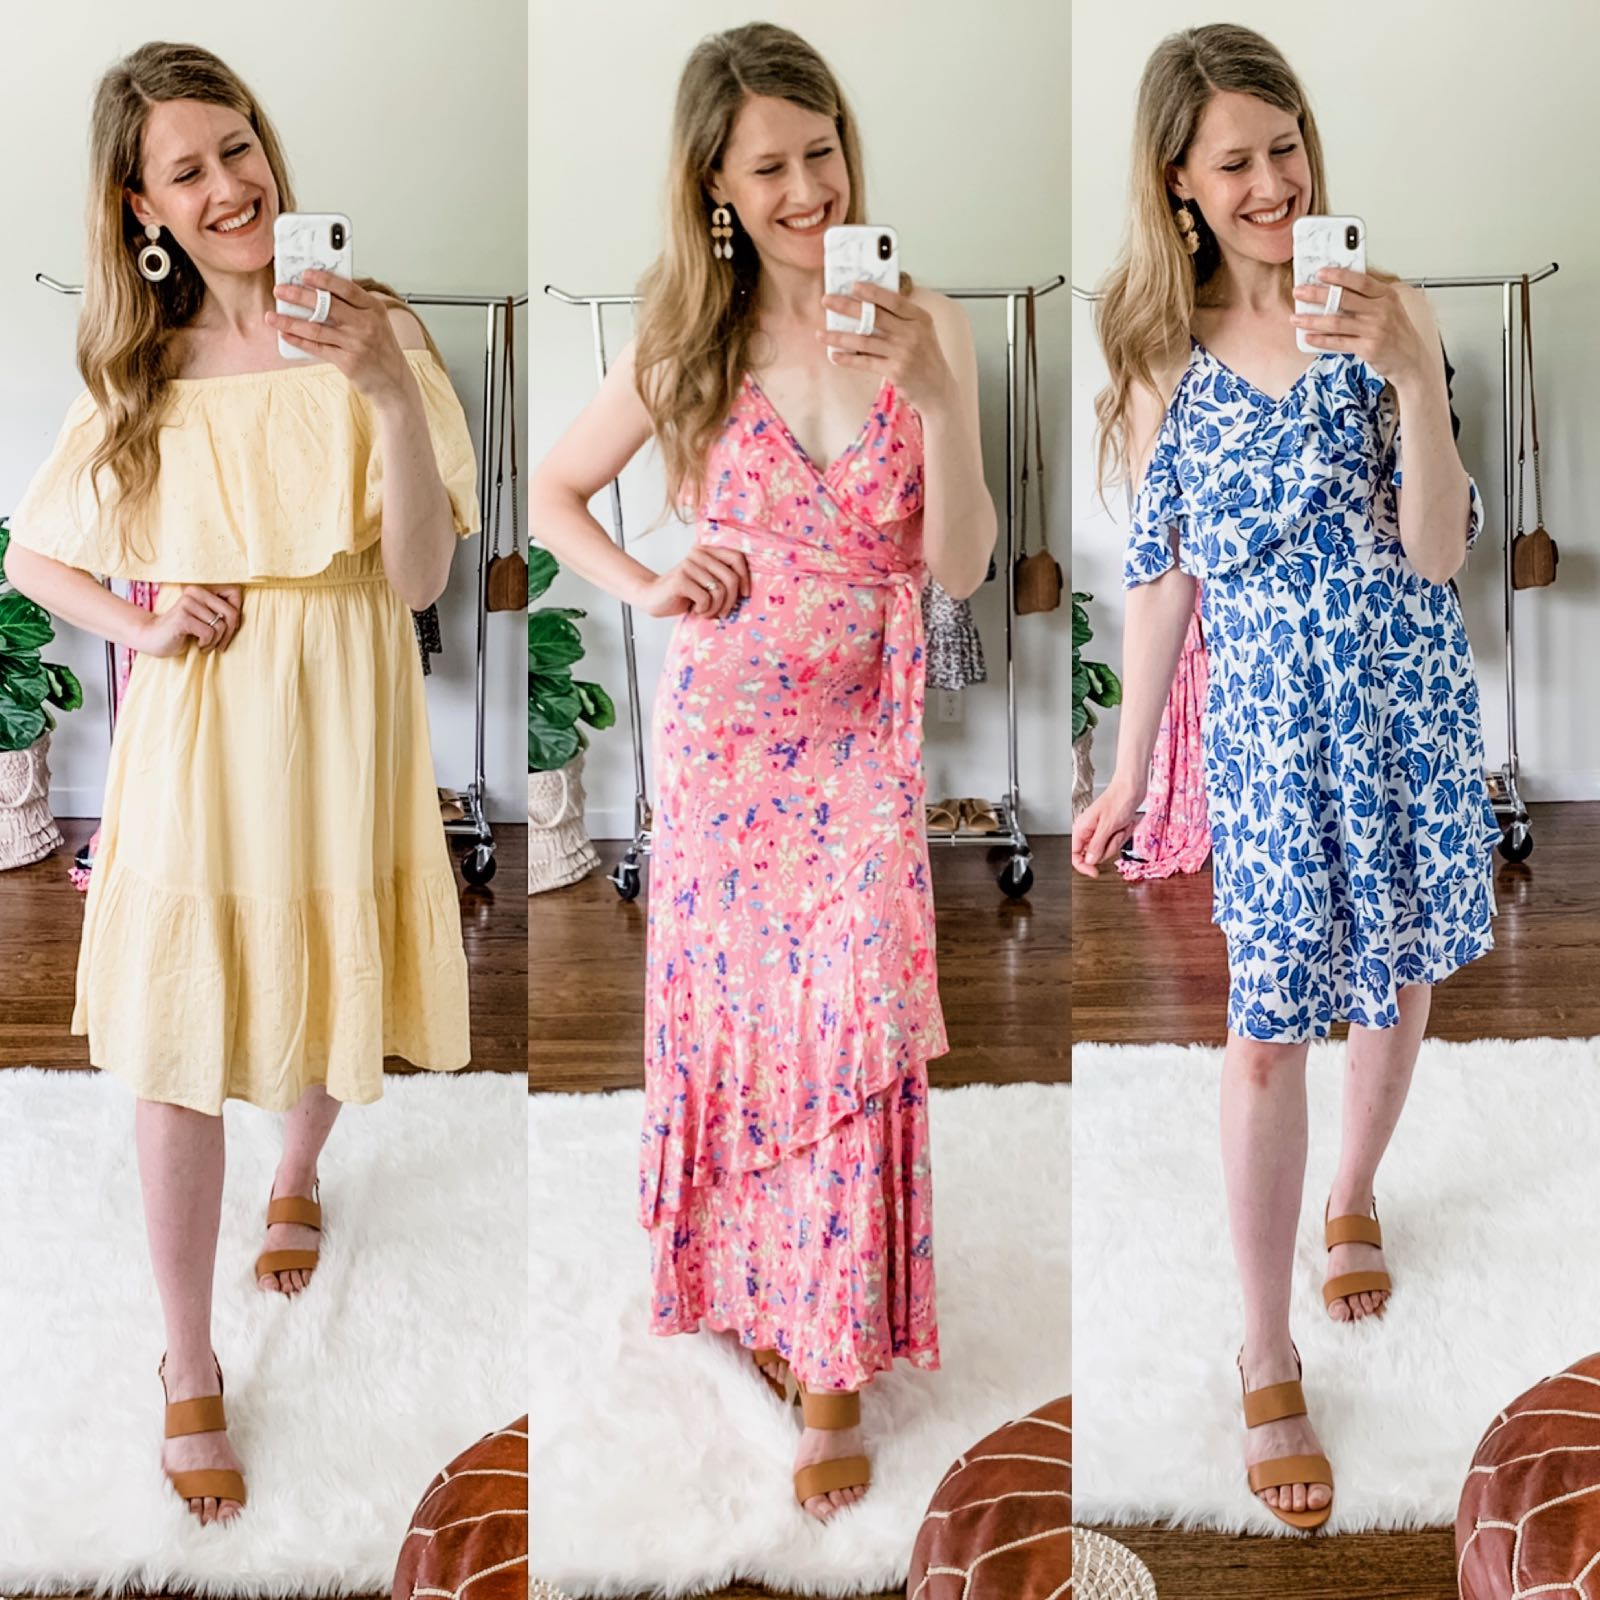 1e0d05ba429 Summer dresses from the Sofia Vergara collection at Walmart - under  40!